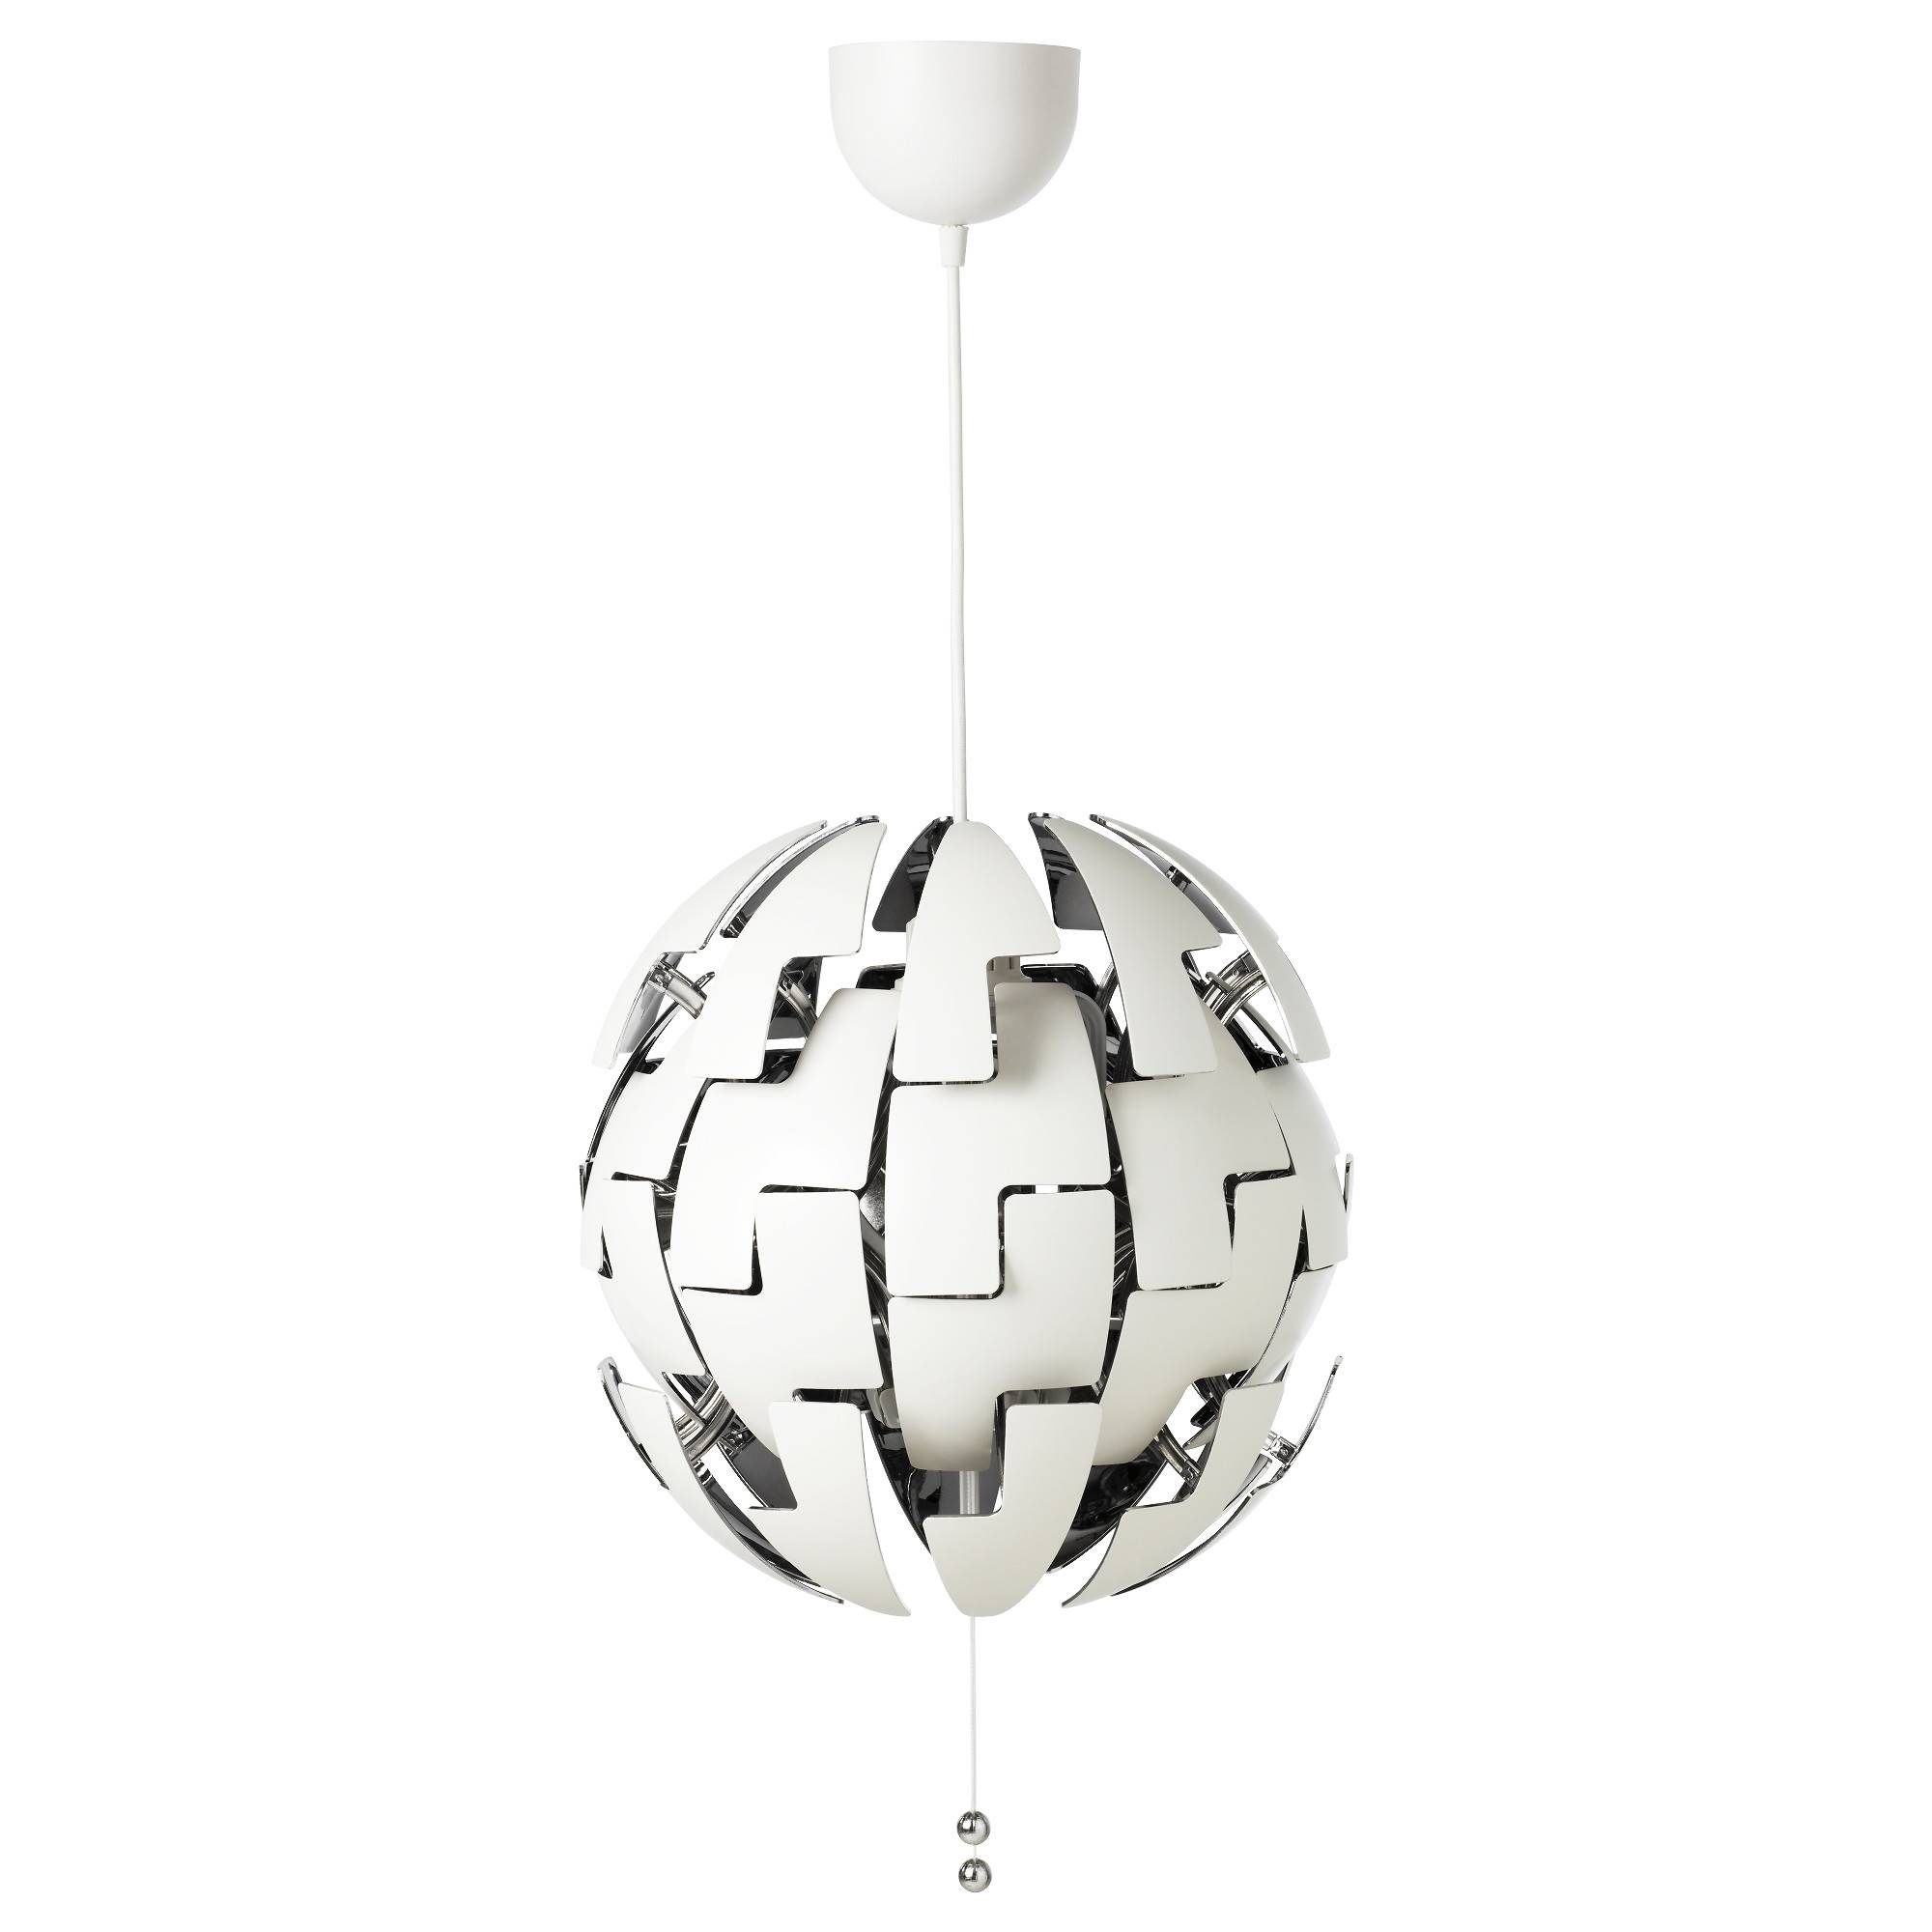 Ikea Ps 2014 Pendant Lamp - White/silver Color - Ikea pertaining to Ikea Pendant Lights Fixtures (Image 10 of 15)